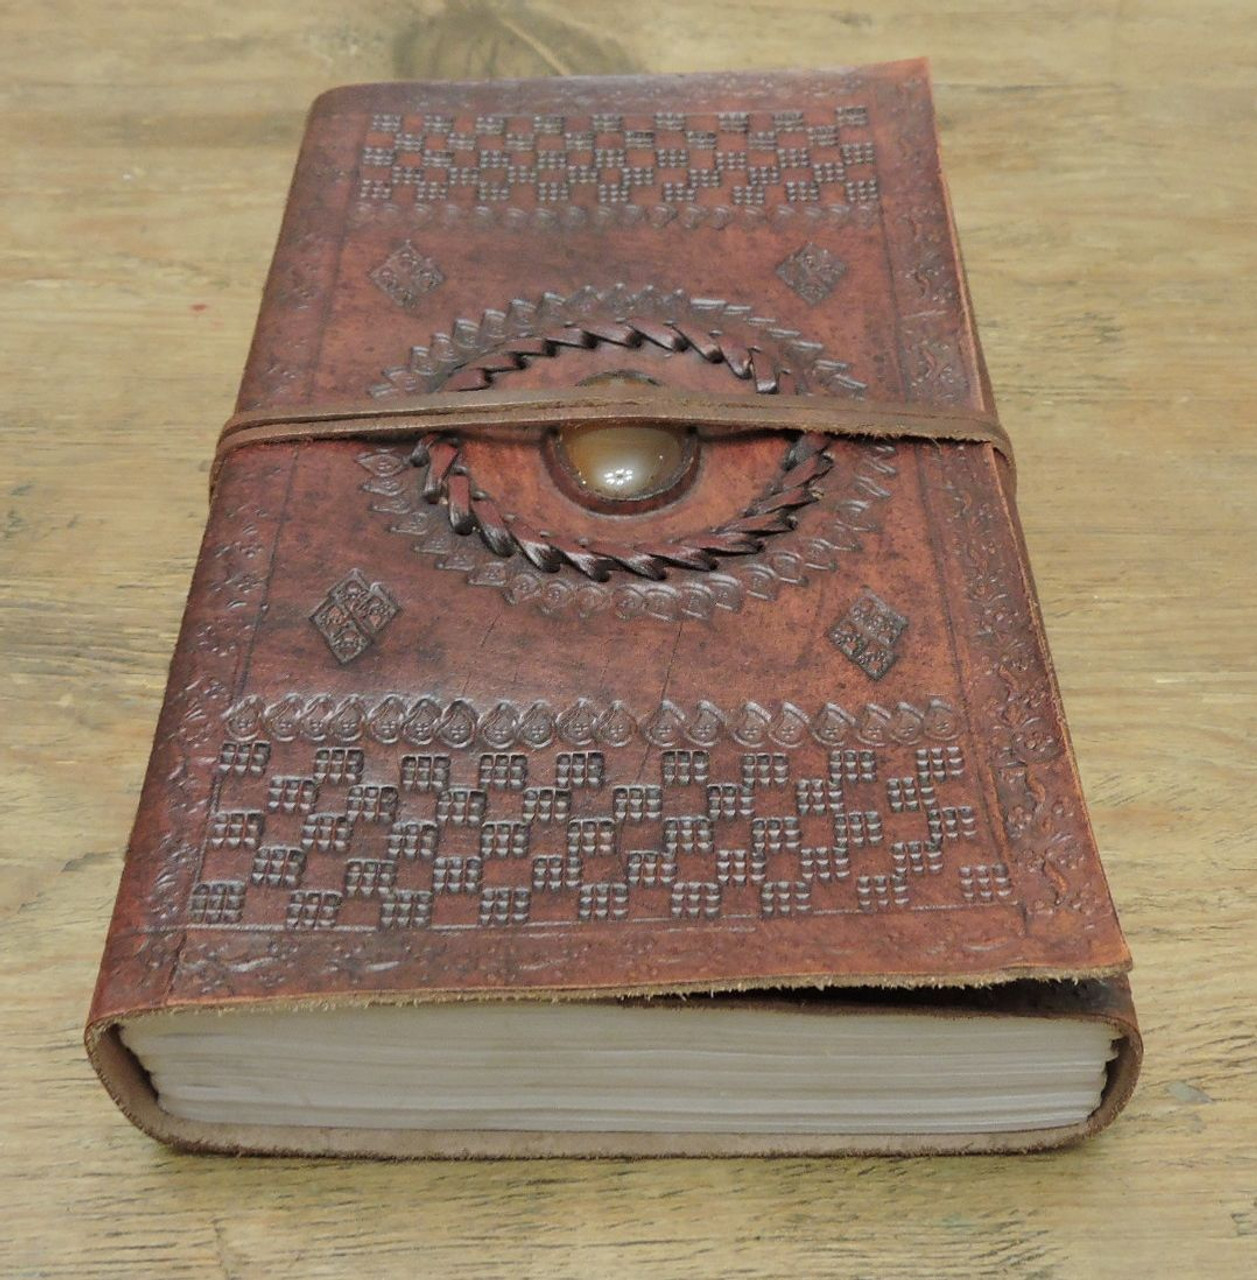 9 x 5 leather journal - bottom view